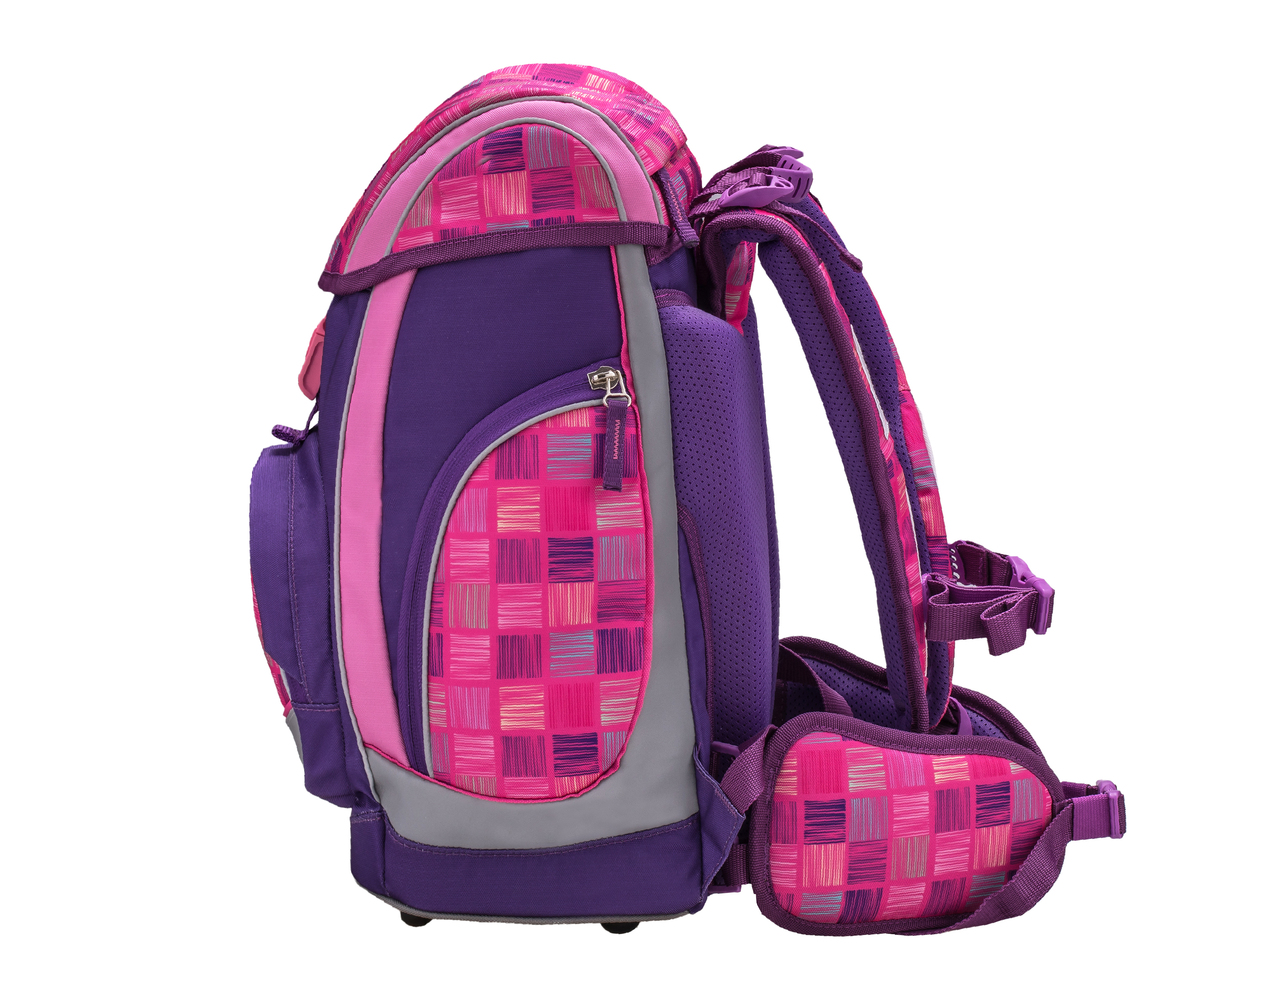 Ранец-рюкзак Belmil Comfy Pack 405-11/683 цвет Pink & Purple Harmony+ дождевик, - фото 3